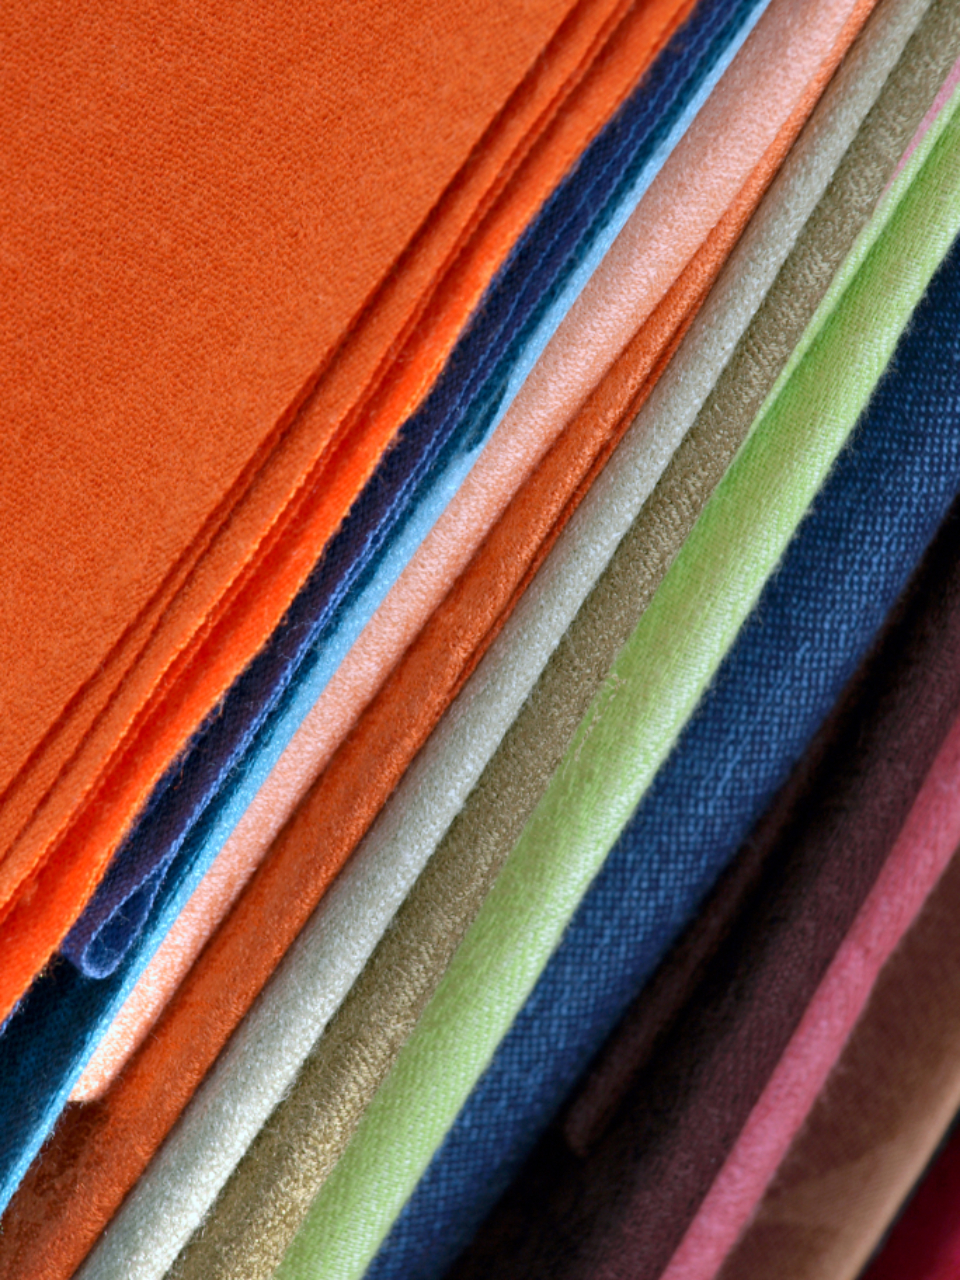 fabric swatches colorful